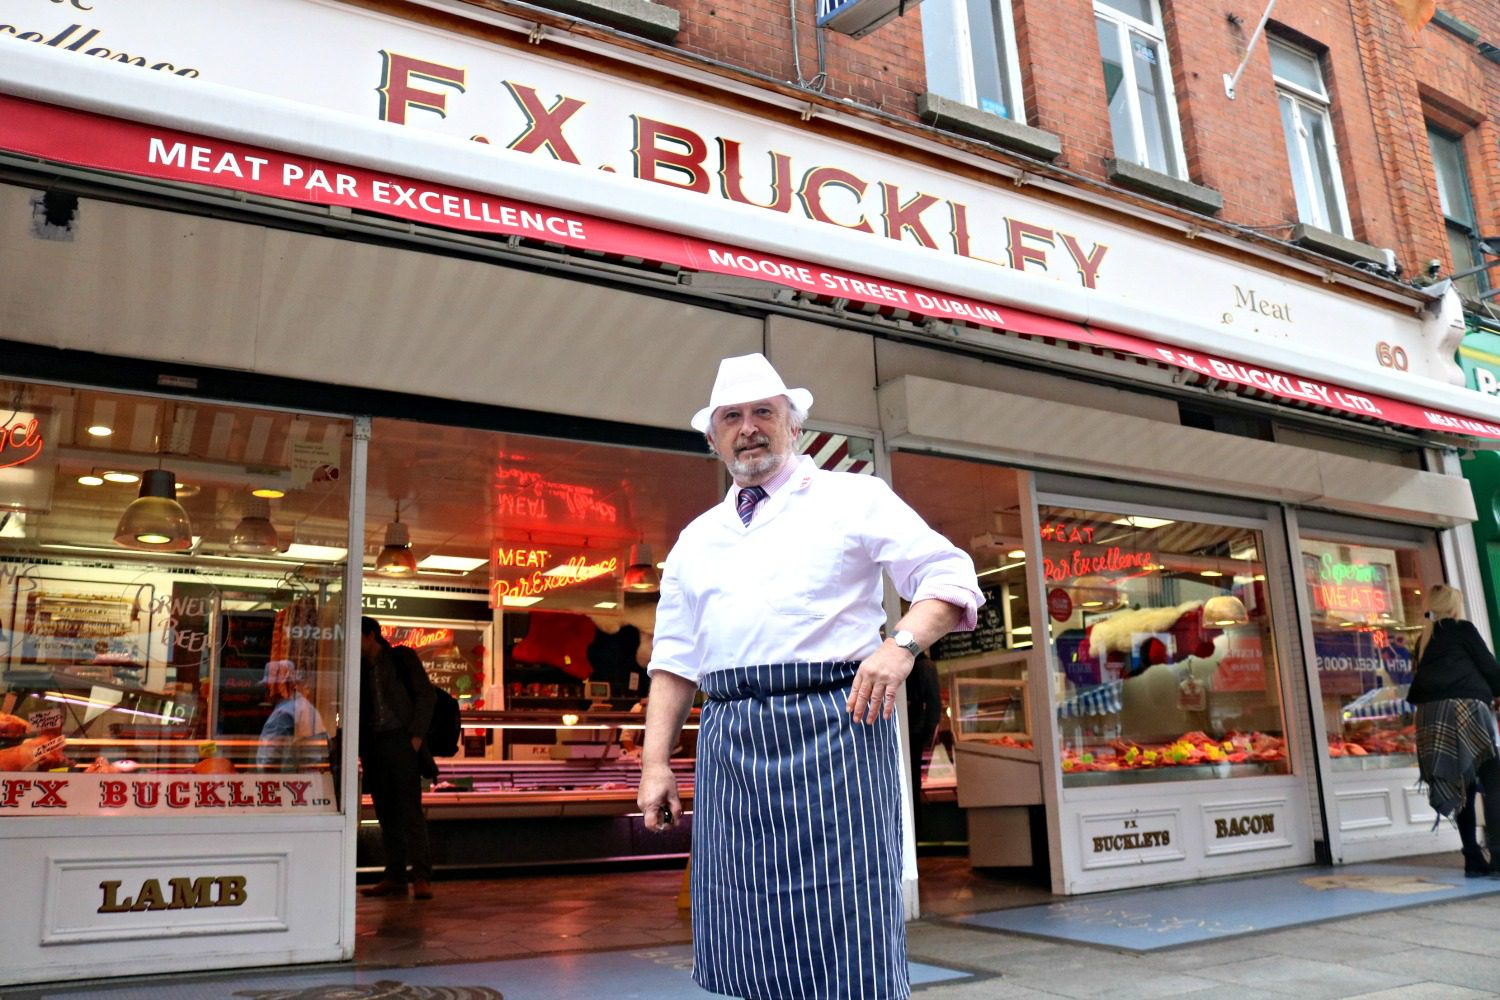 Paddy Buckley of FX Buckley – 45 years on Moore Street